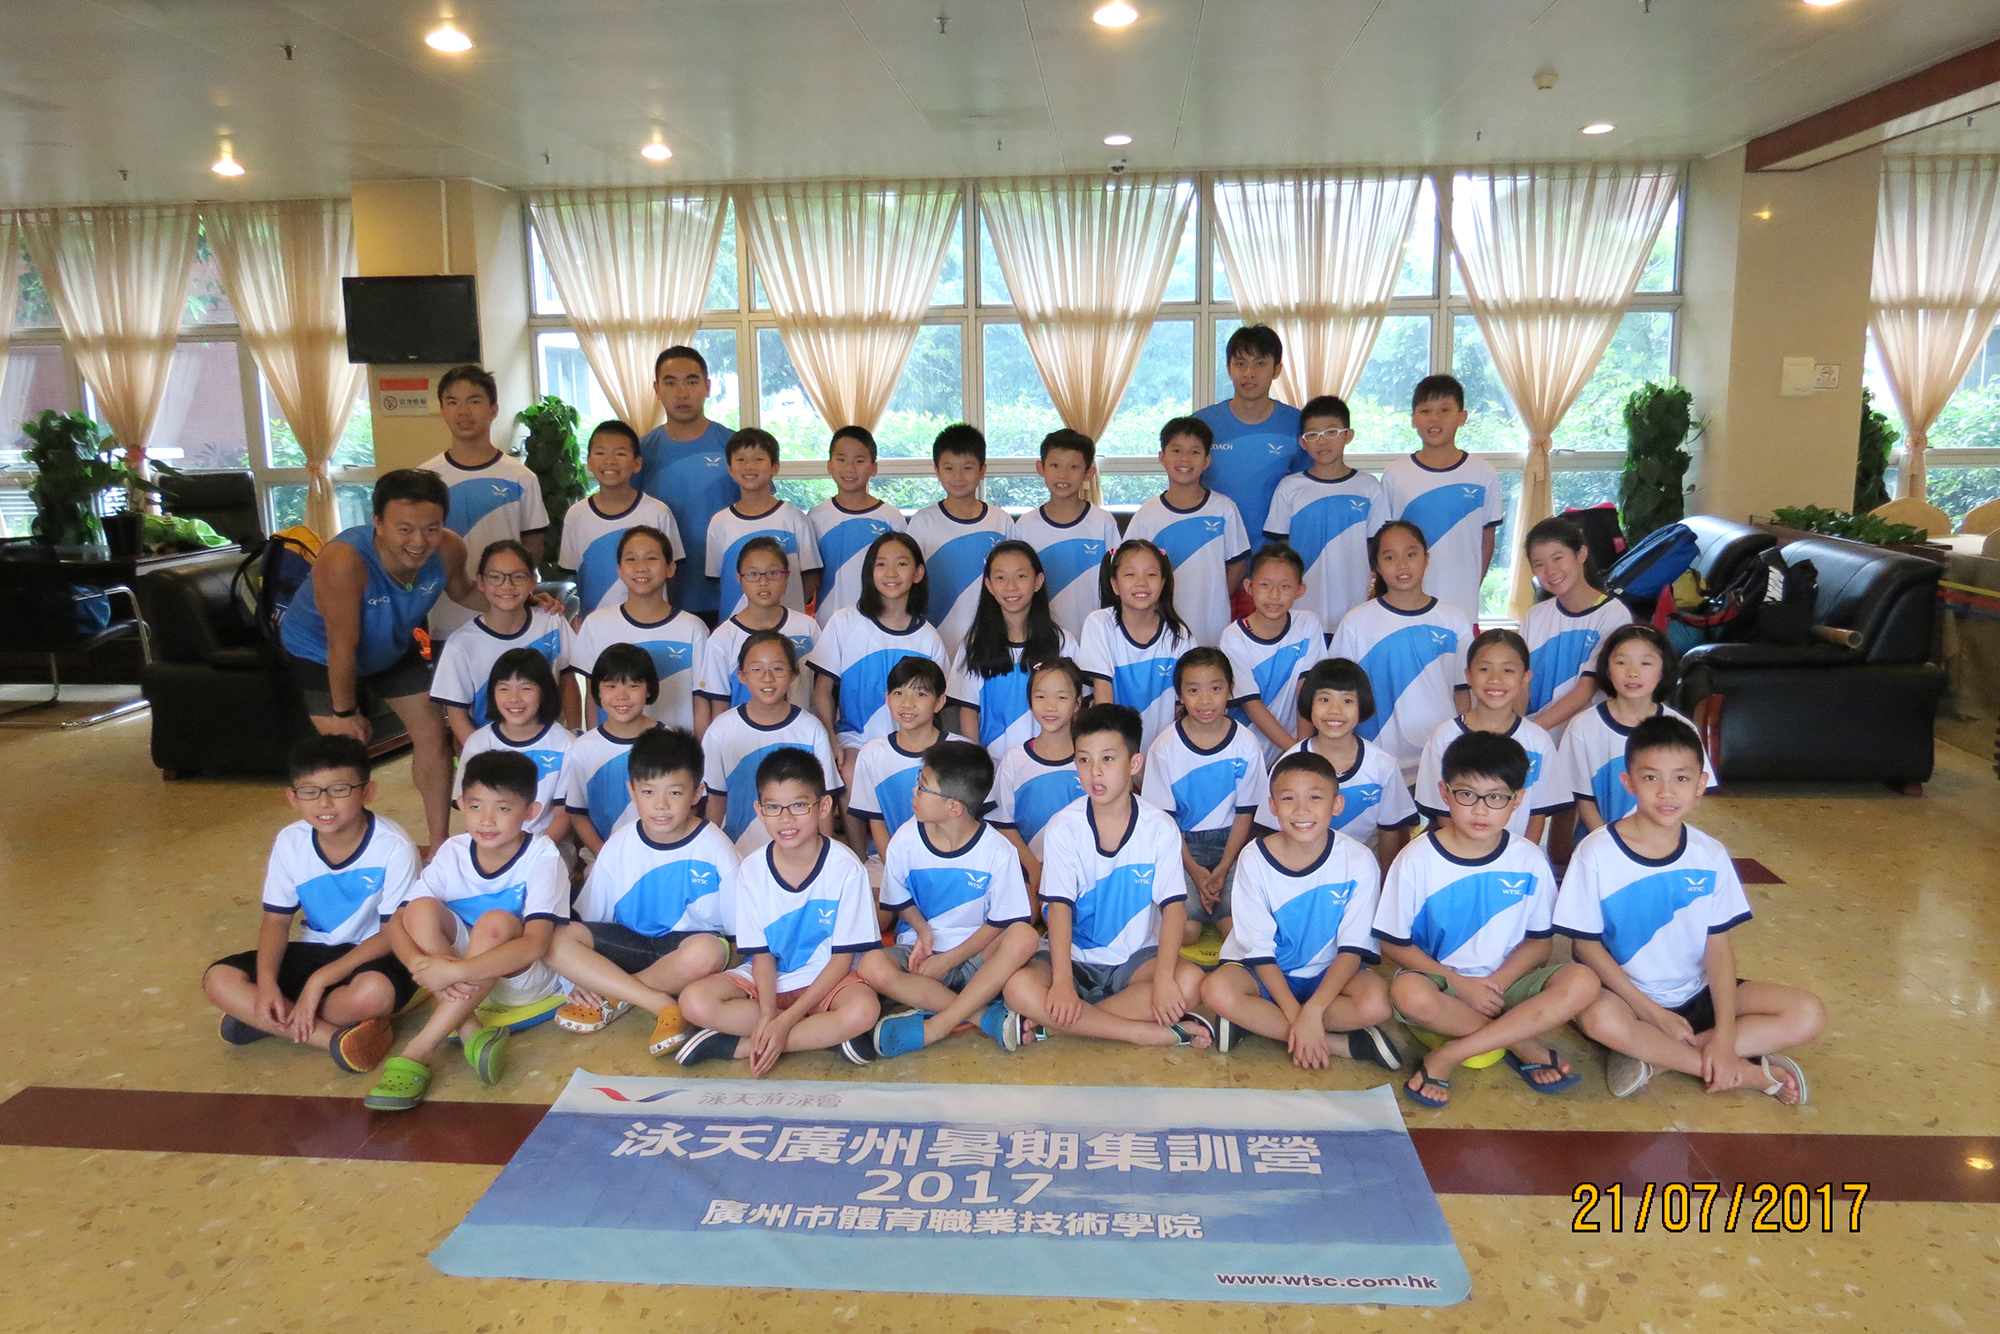 Win Tin Swimming Club - 2017 Summer Camp 10